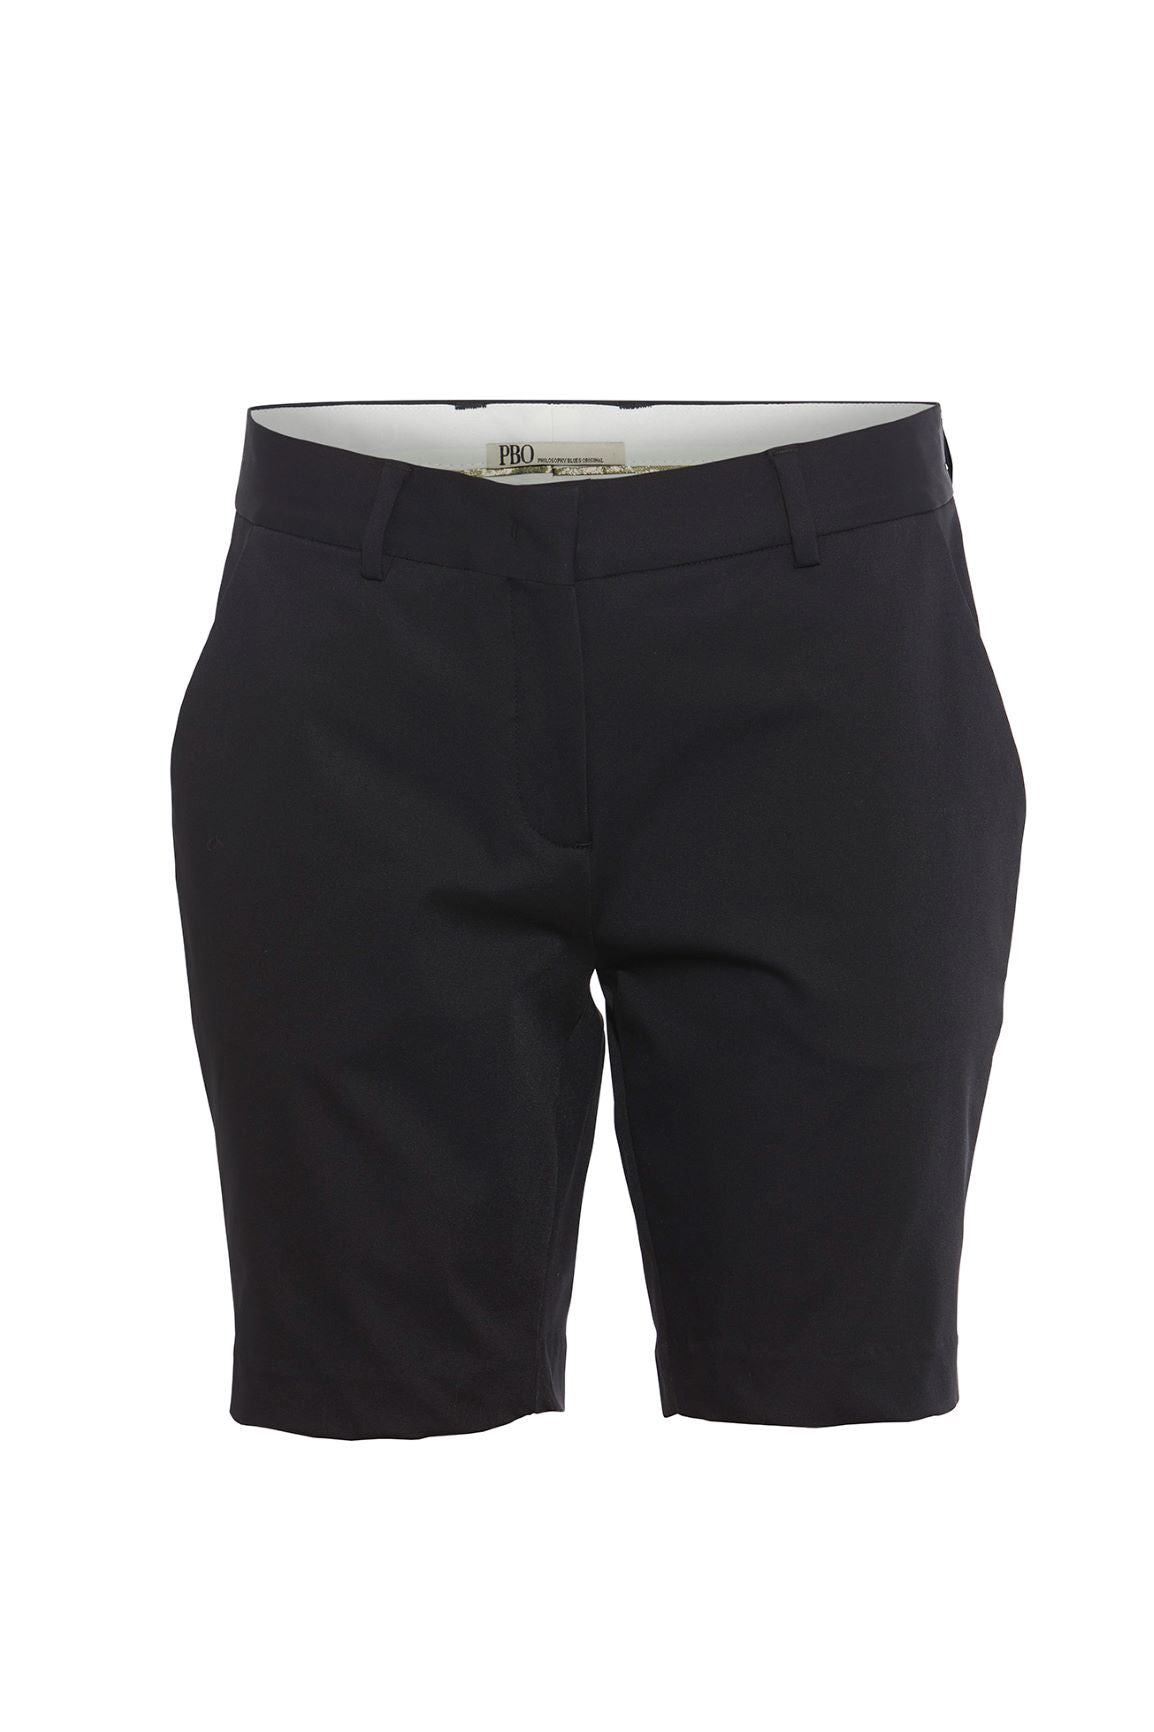 PBO shorts Beck sort (3669834465359)